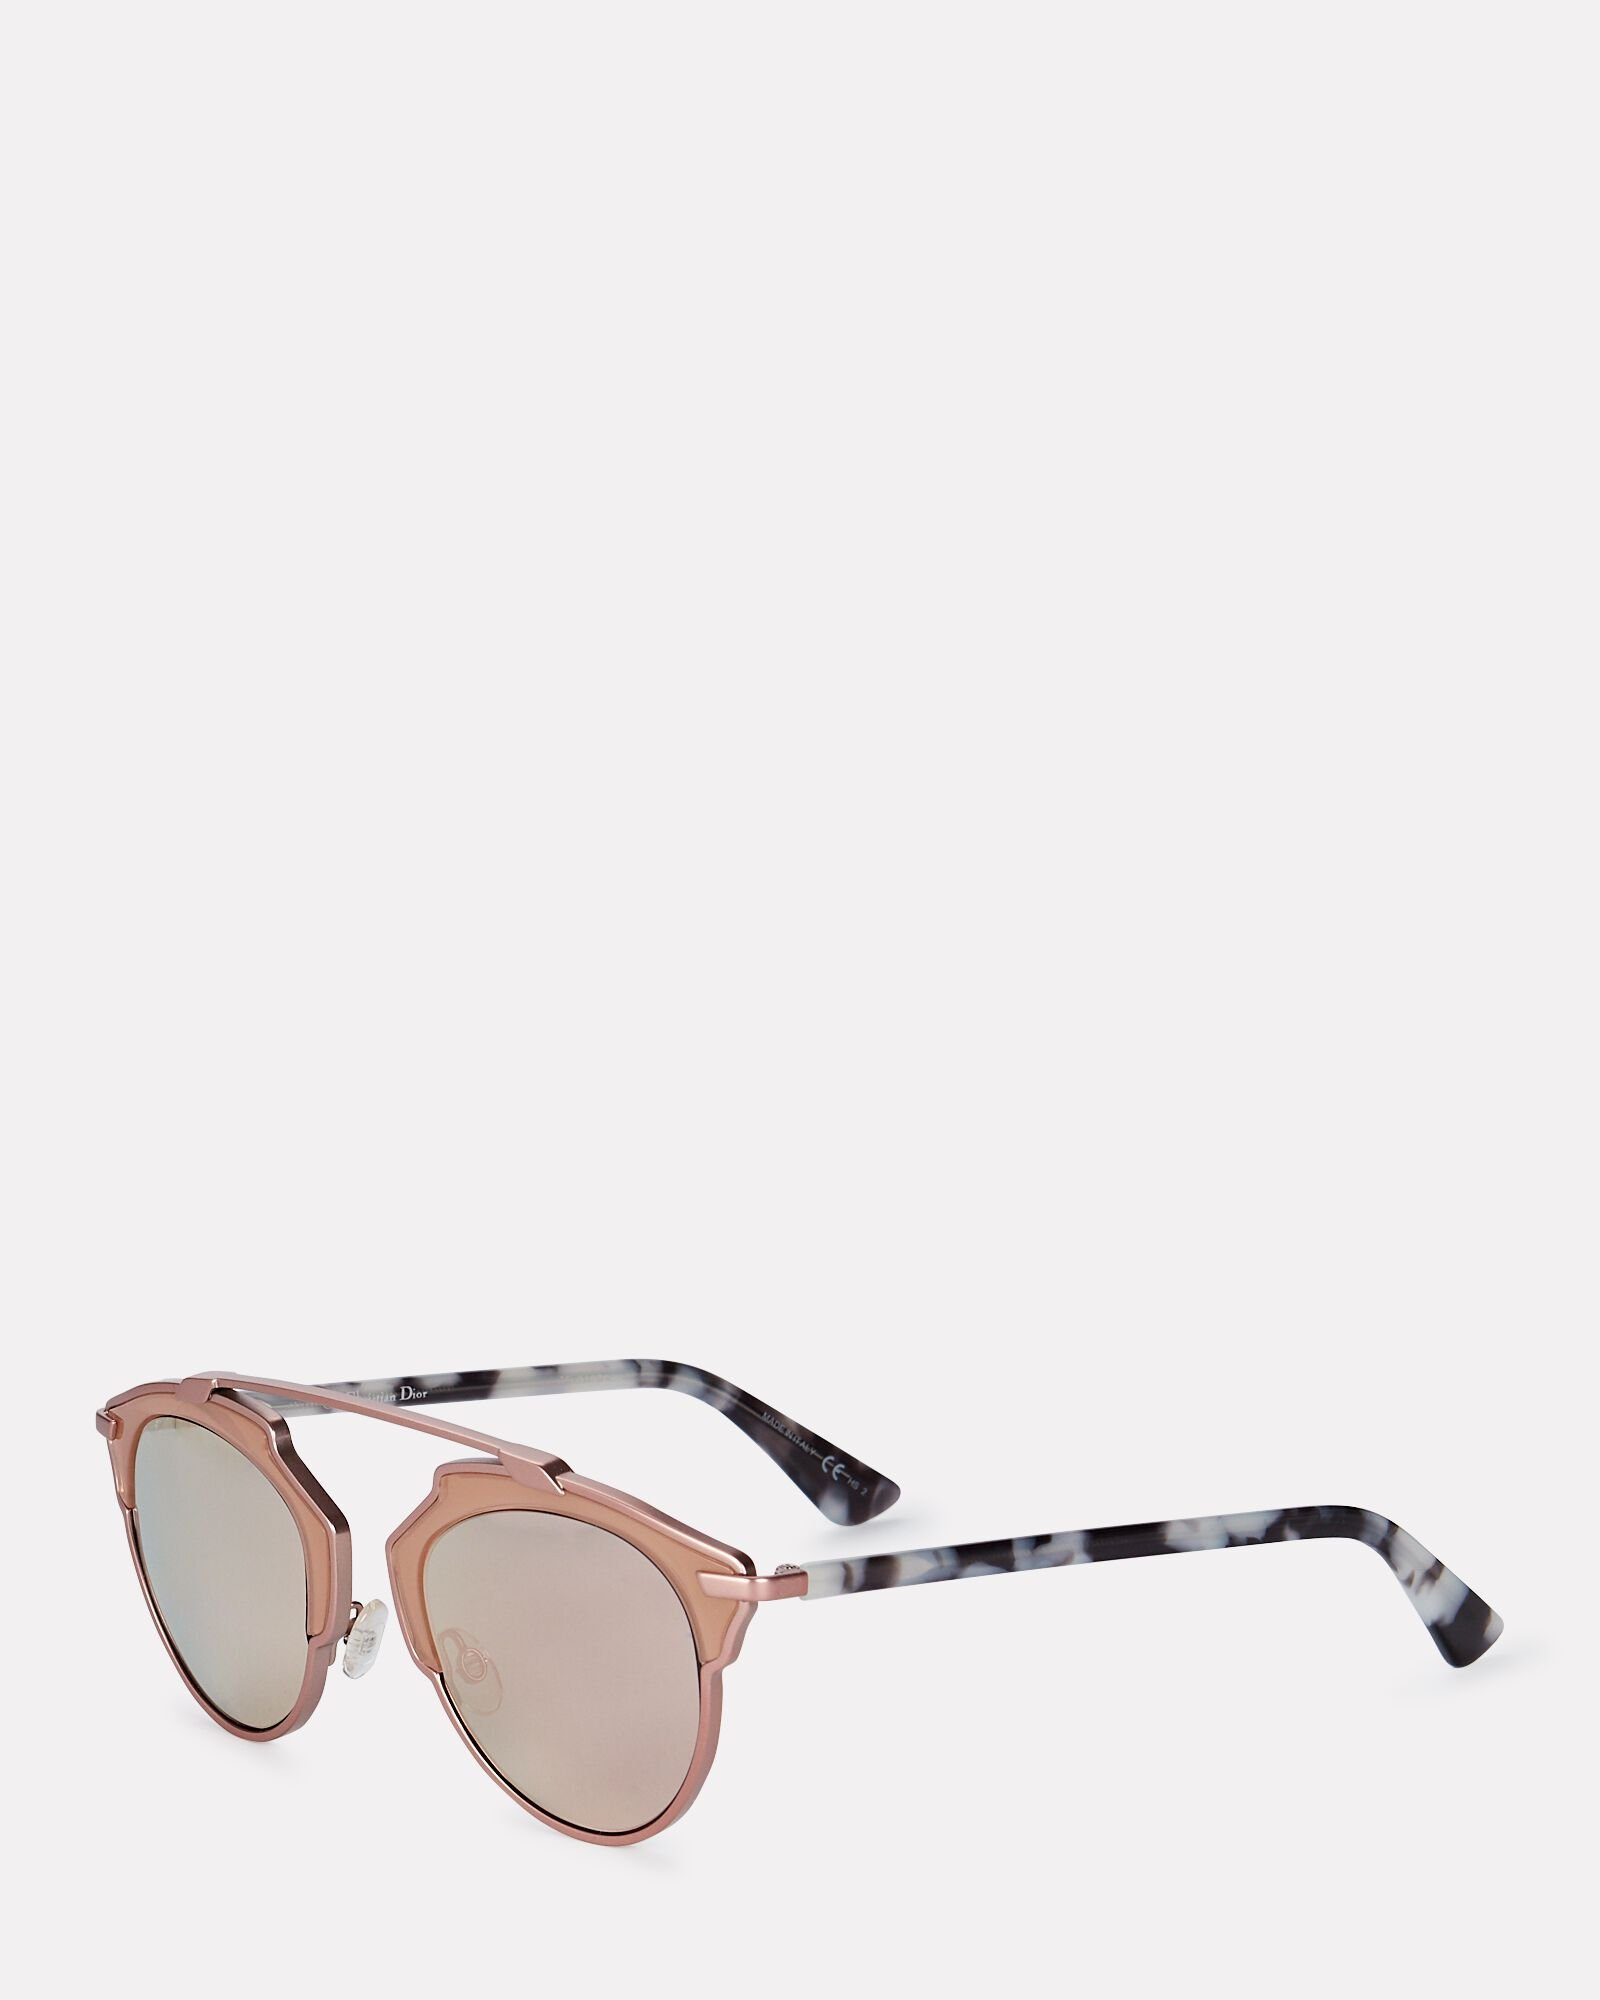 DiorSoReal Sunglasses, MULTI, hi-res